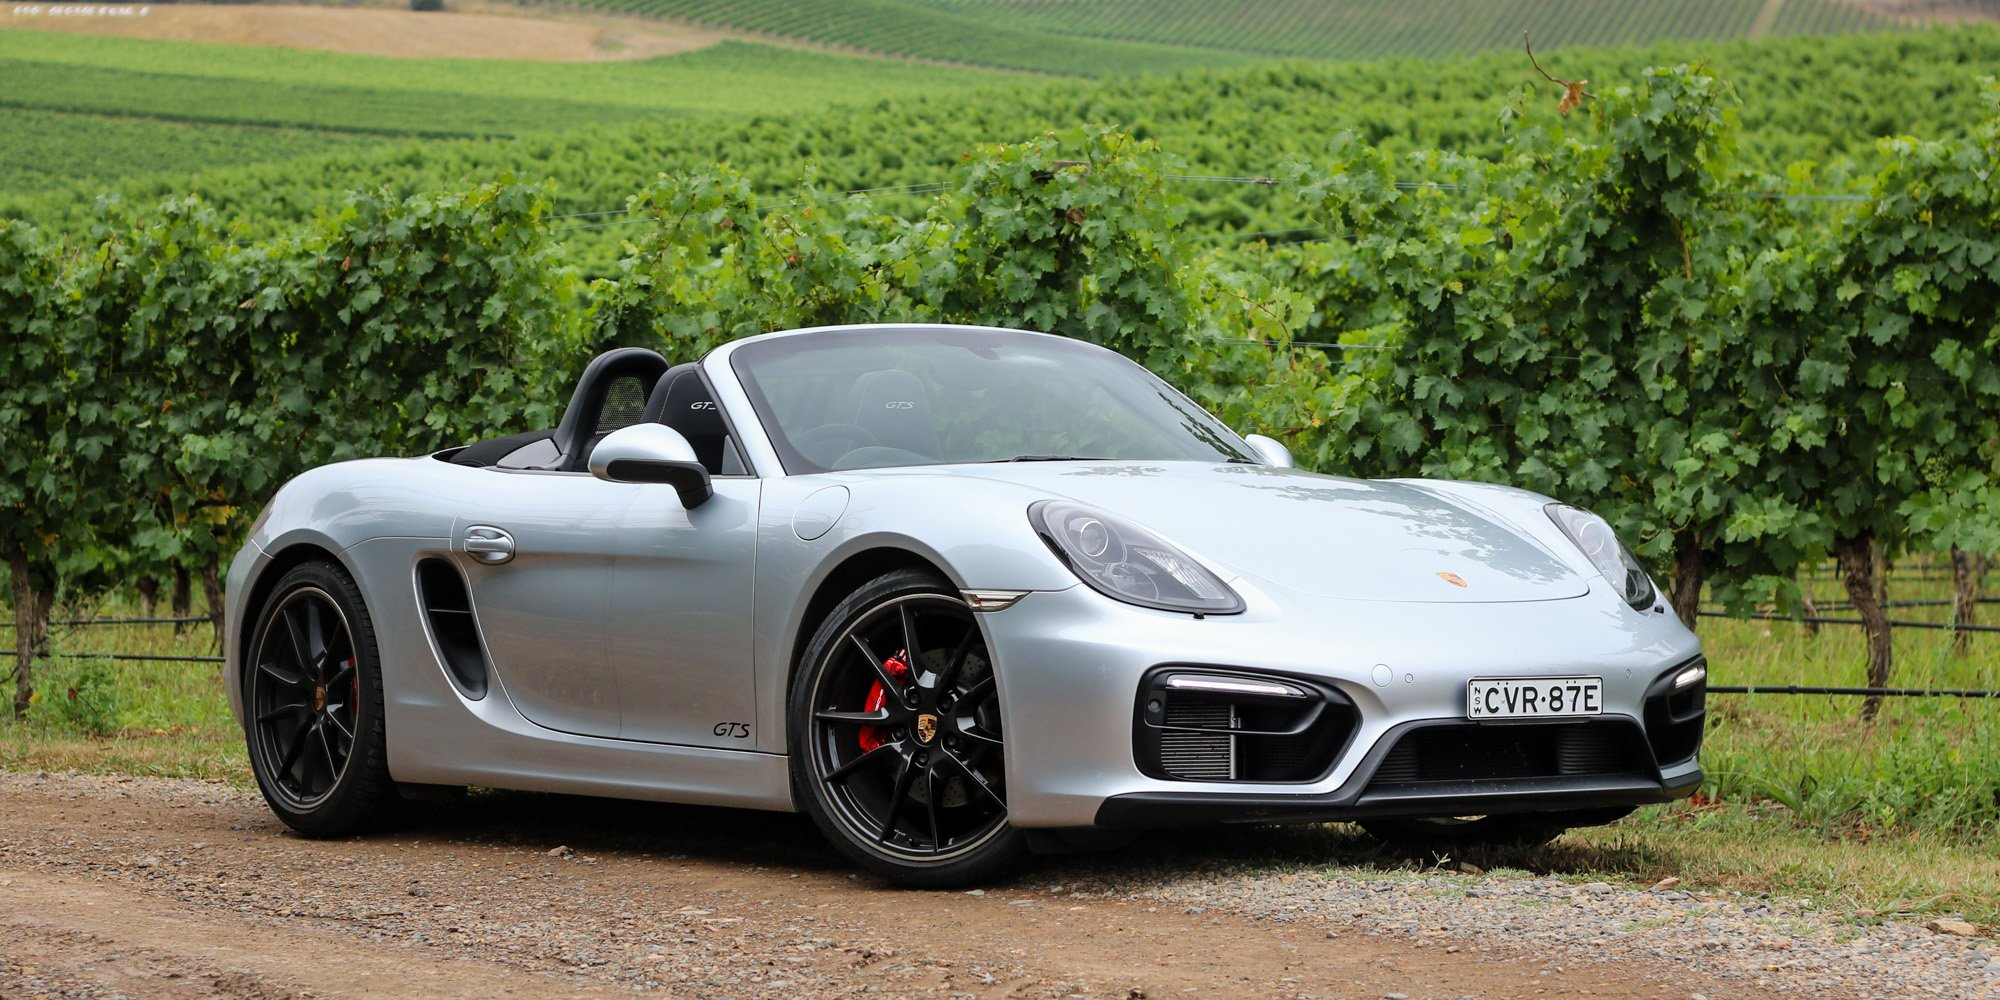 2015 porsche boxster gts review yarra valley weekender photos caradvice. Black Bedroom Furniture Sets. Home Design Ideas